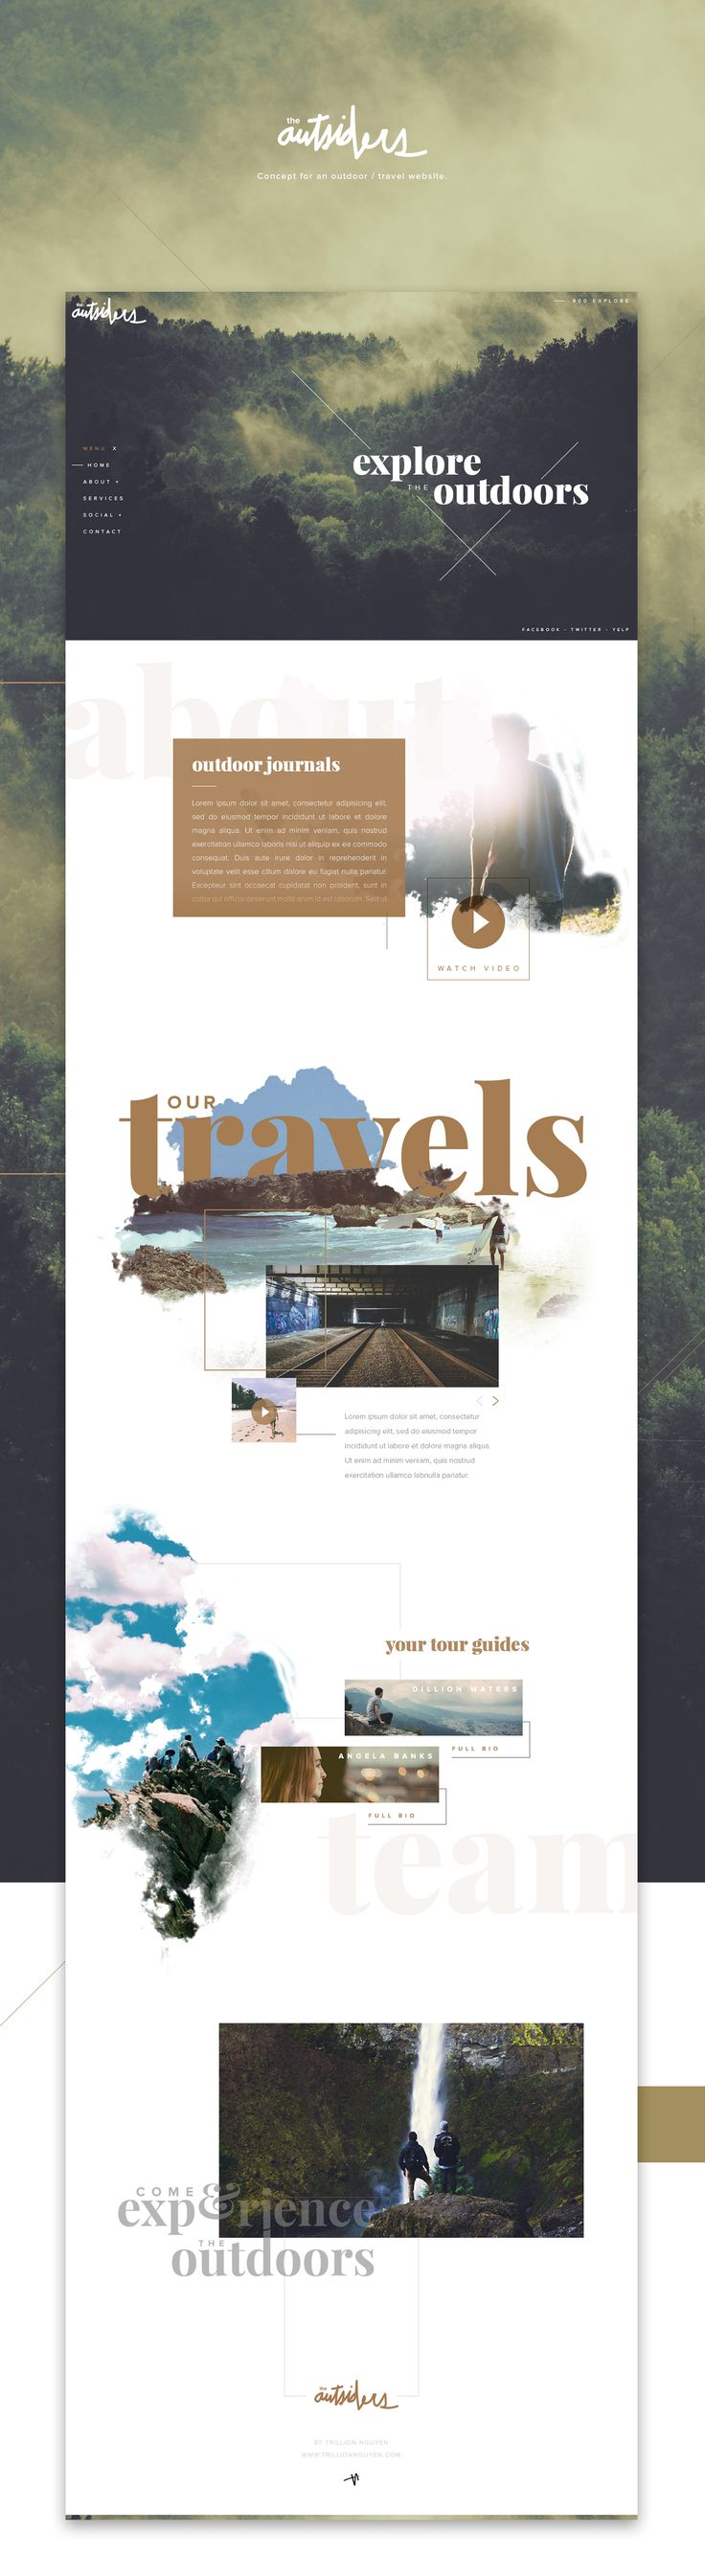 Best 25+ Travel design ideas on Pinterest | Text design, Graphic ...